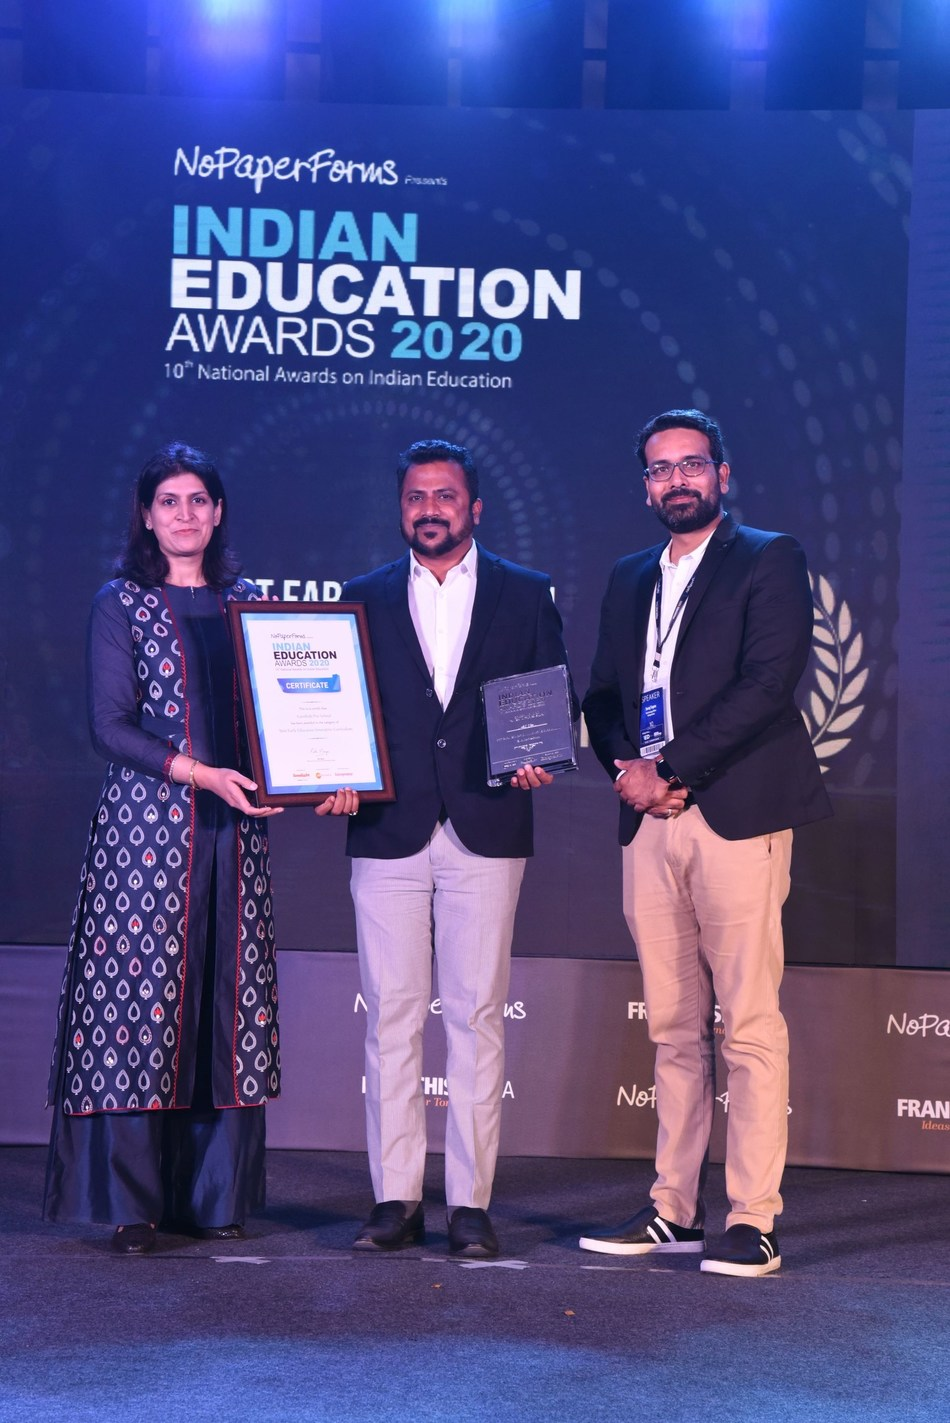 EuroKids Pre-School wins big at the 10th Annual Indian Education Awards 2020